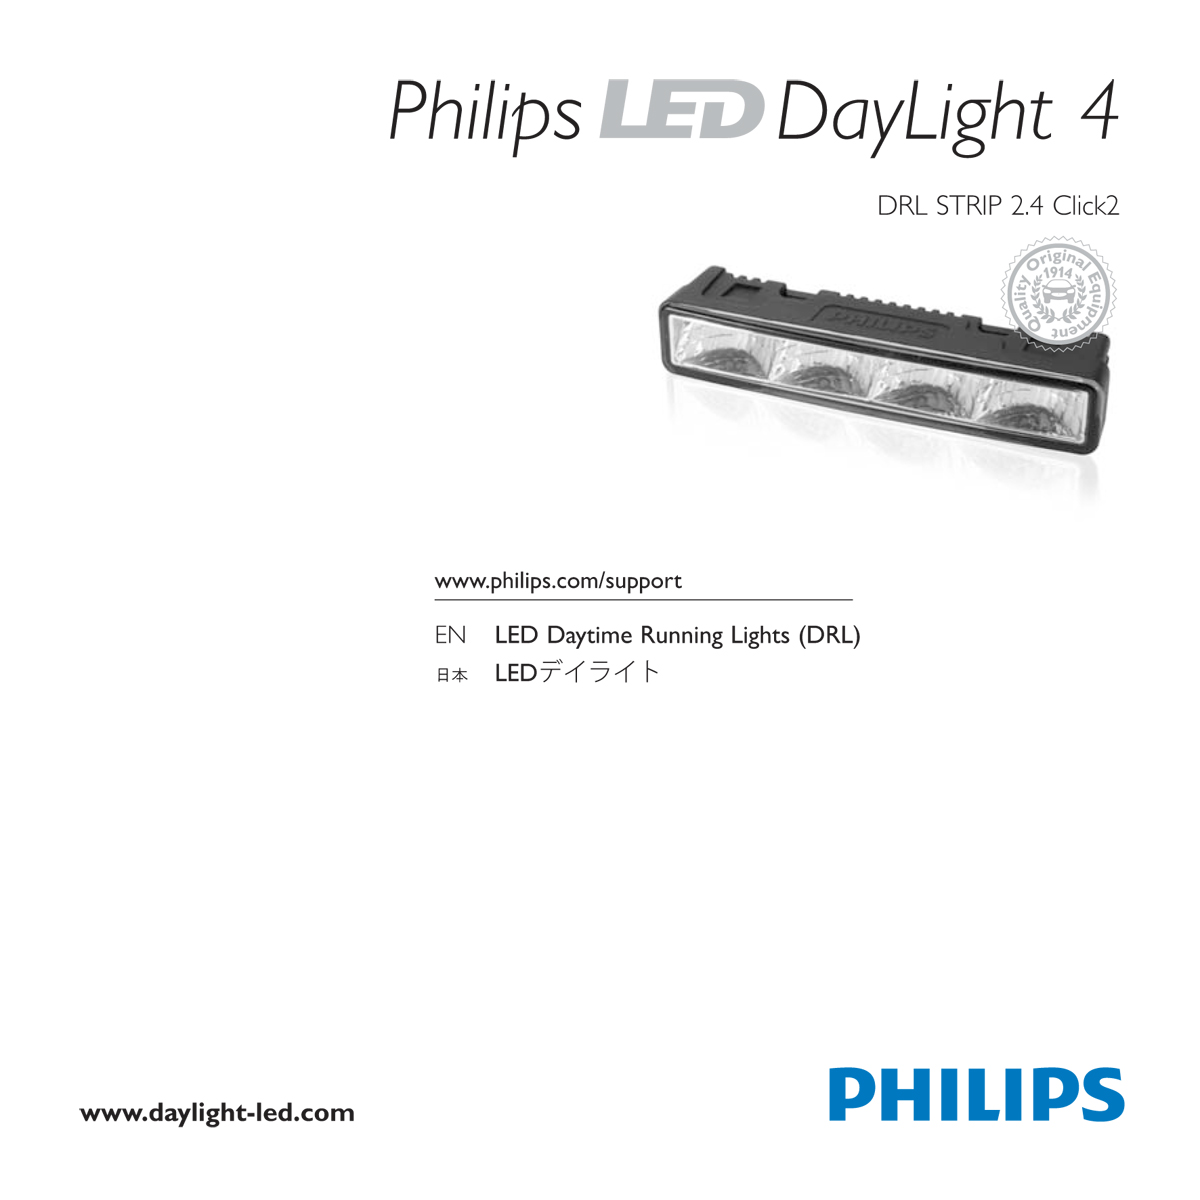 Daylight Wiring Diagram Schematic Diagrams For Led Daytime Running Lights Philips Drl Easy To Read U2022